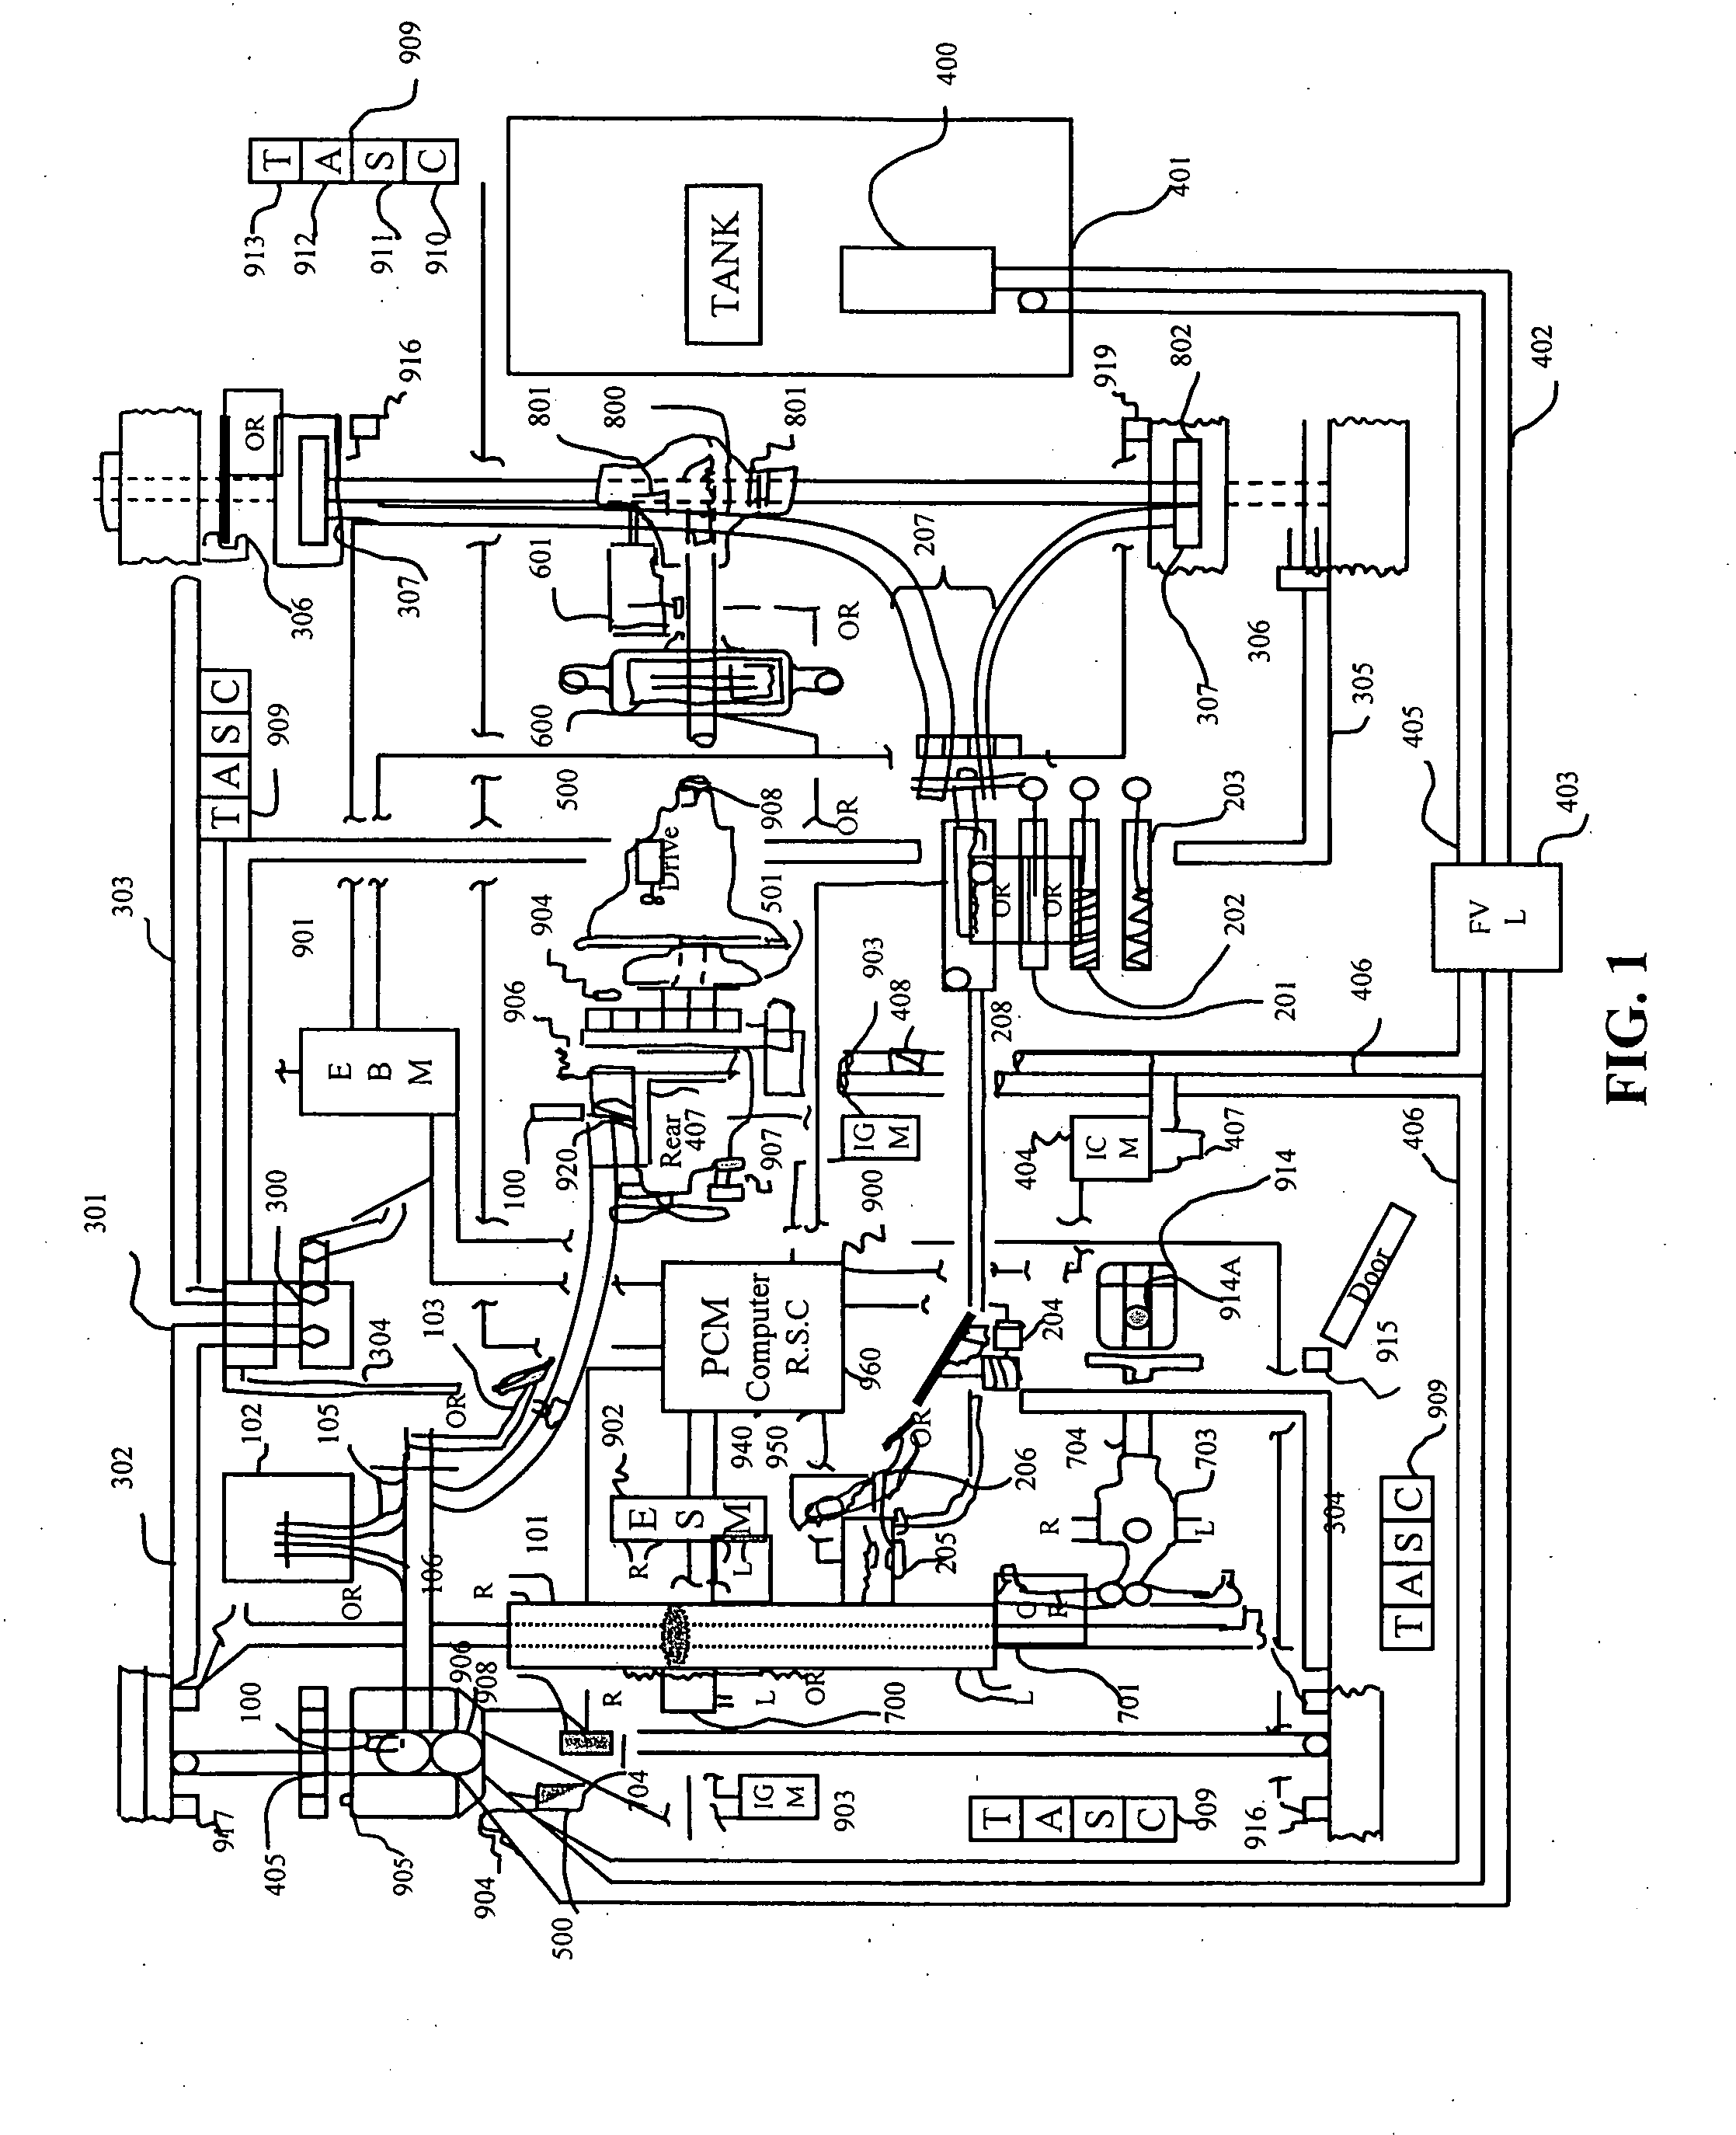 Patent Us20080091309 Electrically Controlled Automated Devices To Relay Schematic Symbol Pcrelay For The Drawing